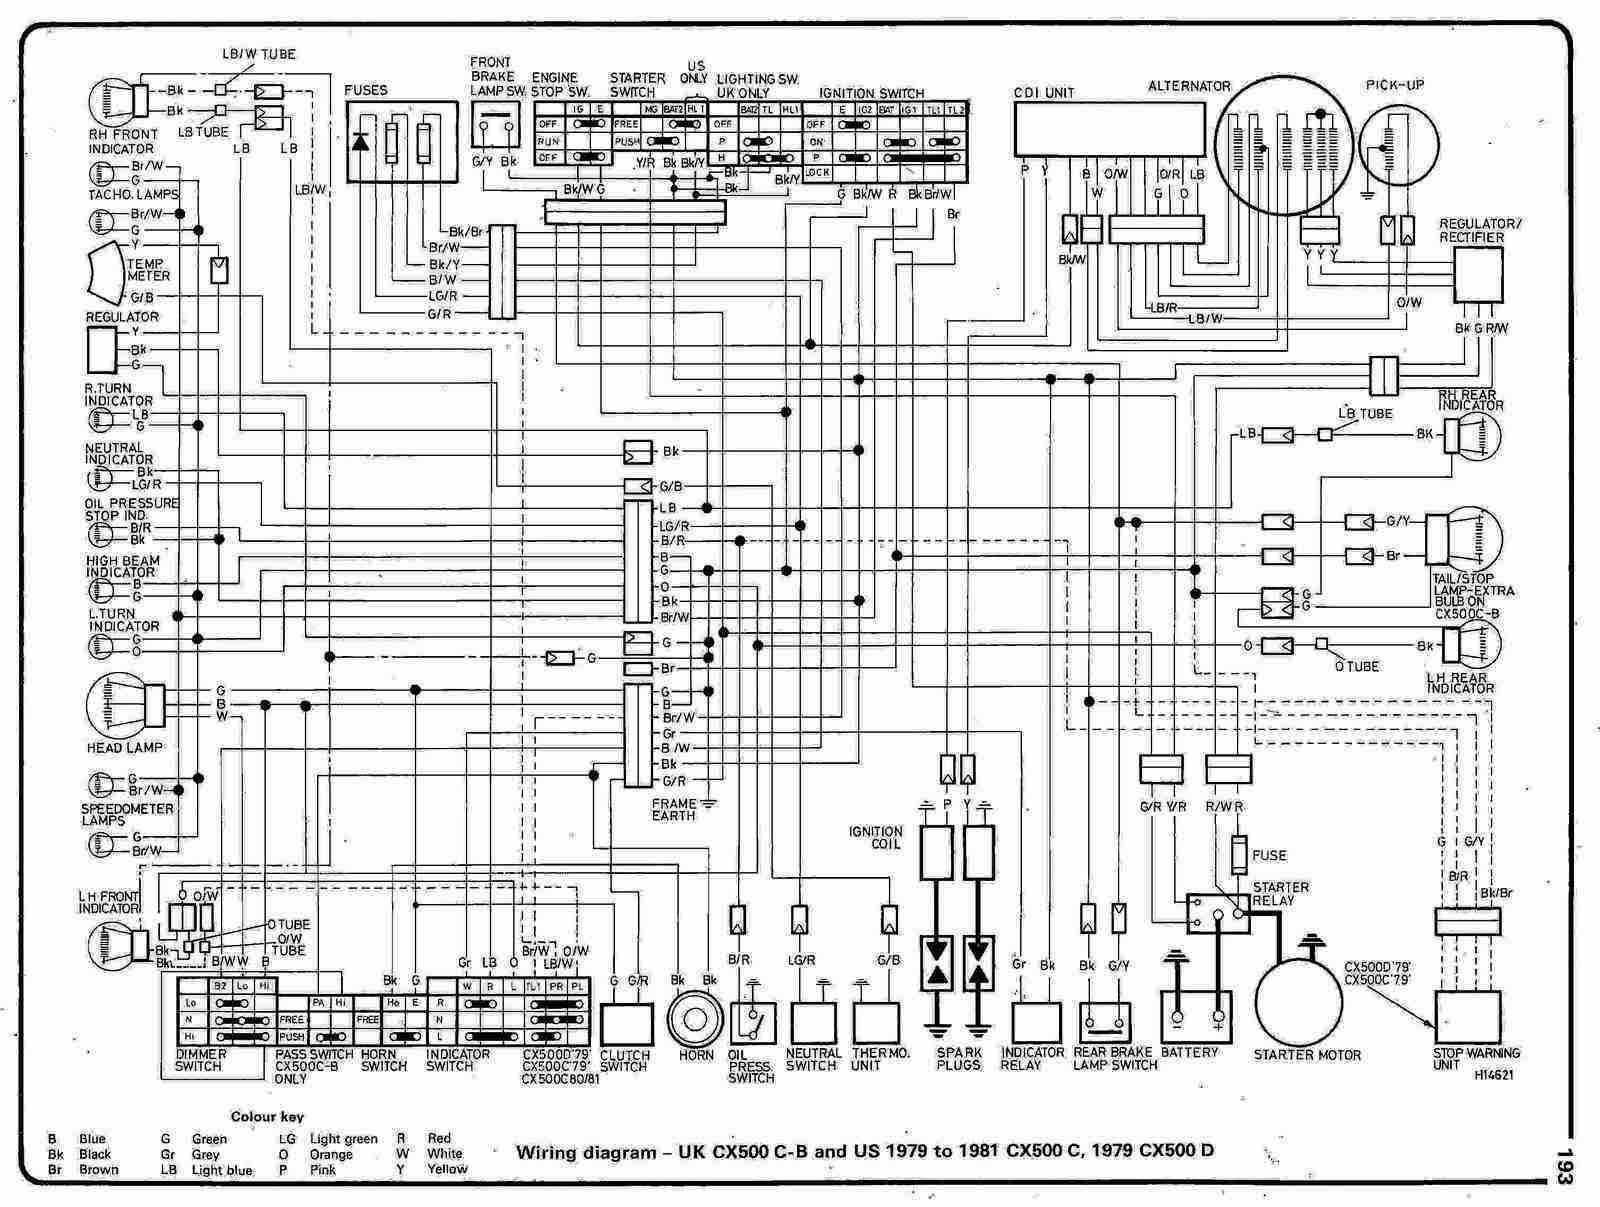 honda motorcycle wiring diagram xl100 plete lc gmrc 01 manuals pdf diagrams and fault codes